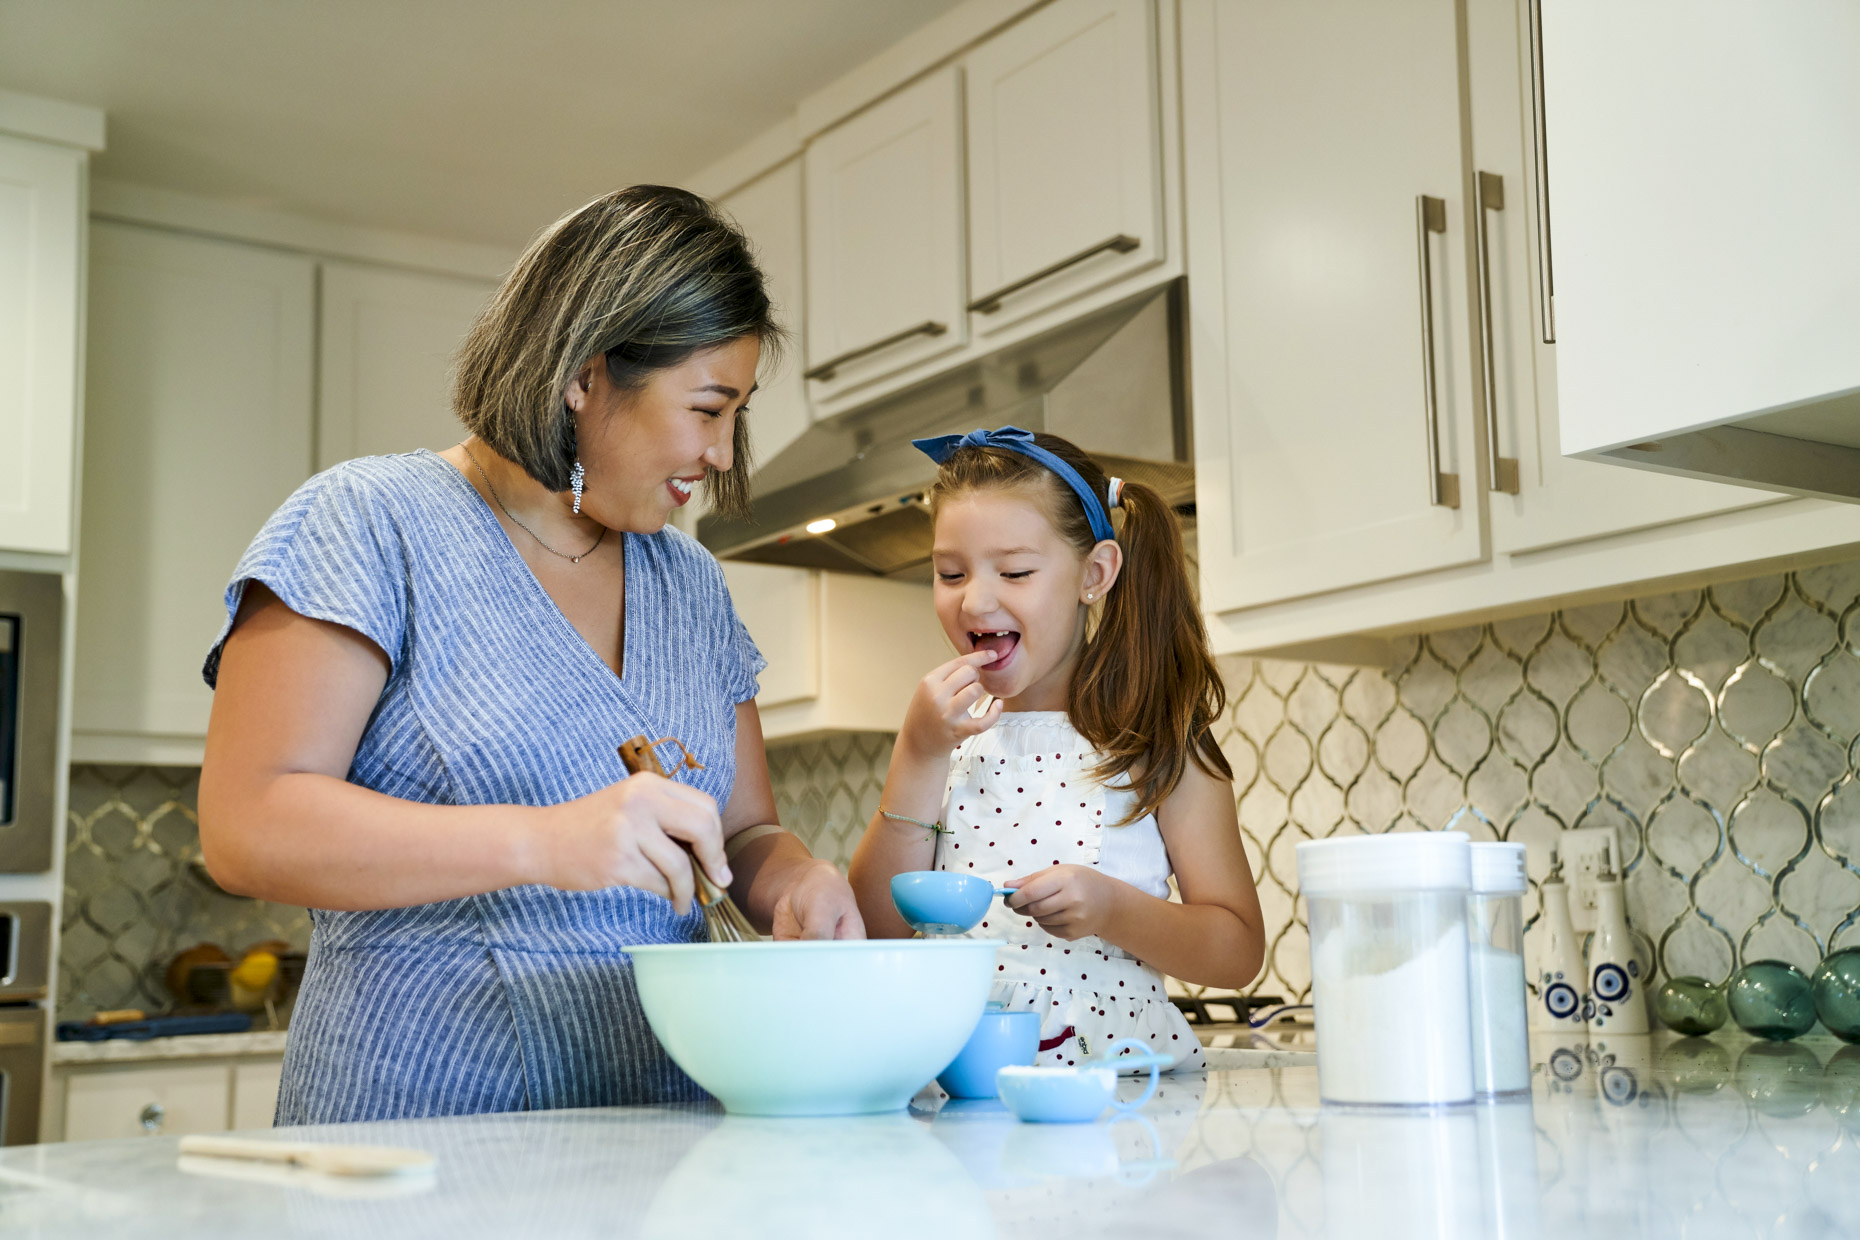 Korean girl baking cookies with her mom in home kitchen